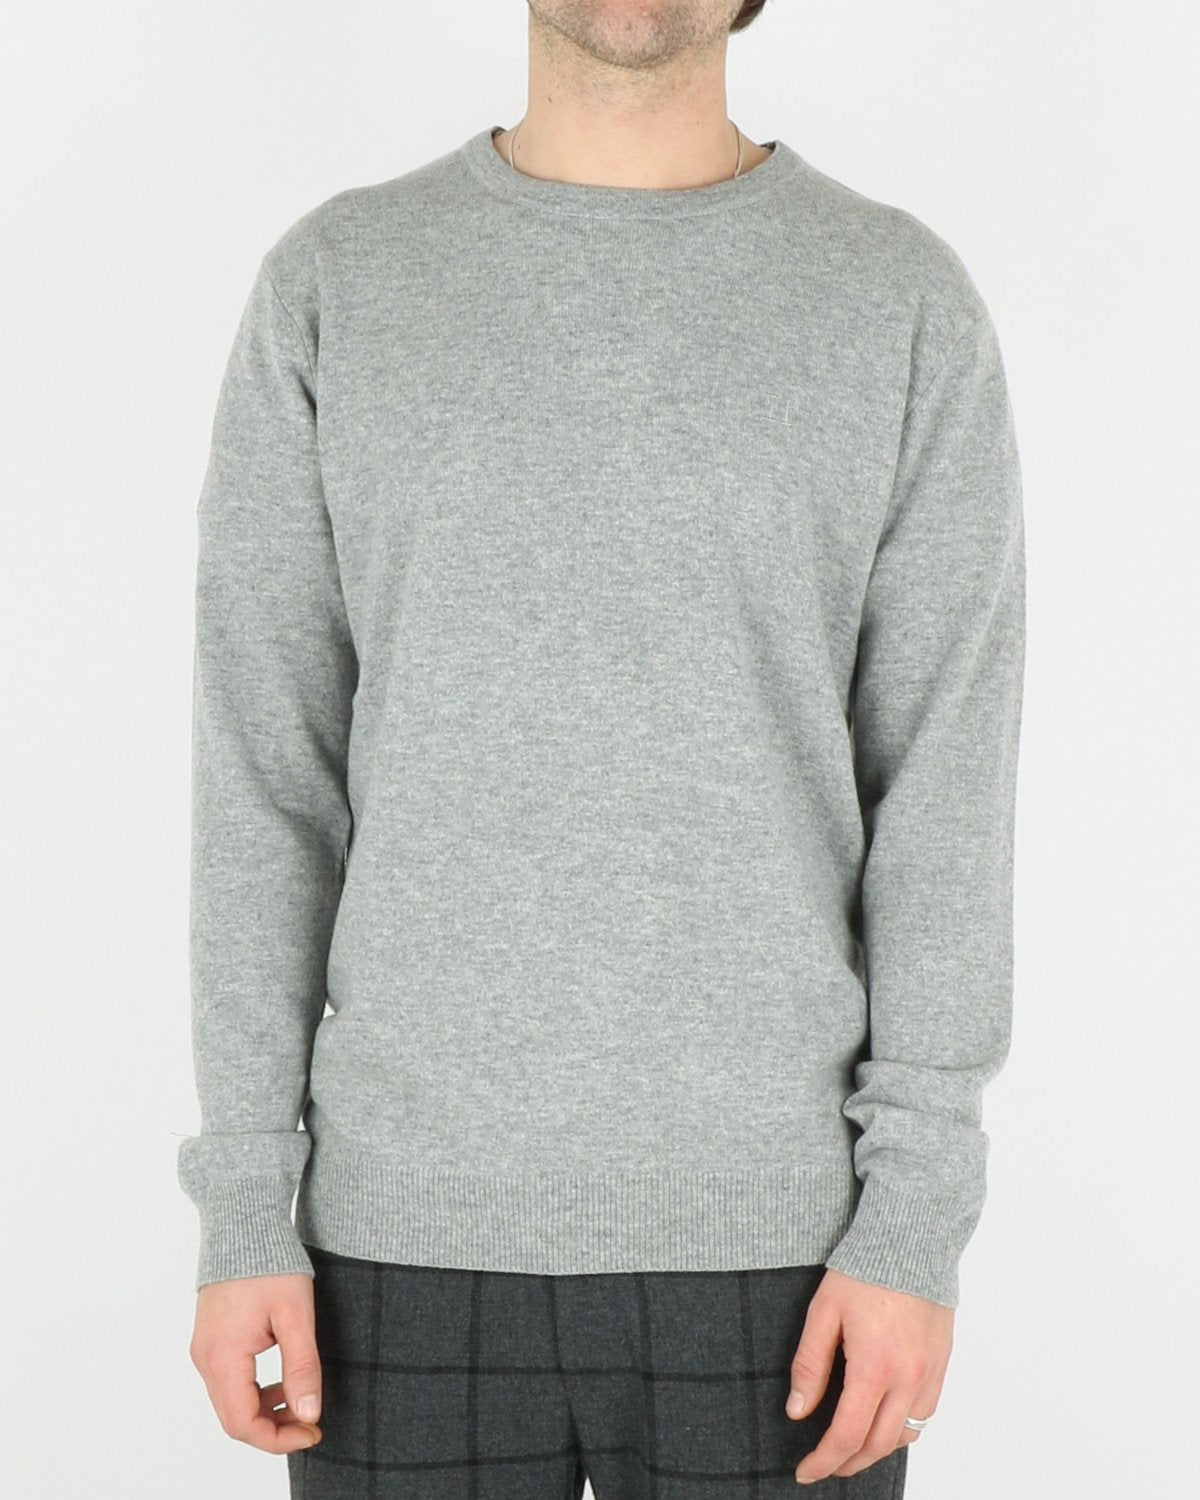 les deux_cashmerino knitwear_light grey melange_1_3